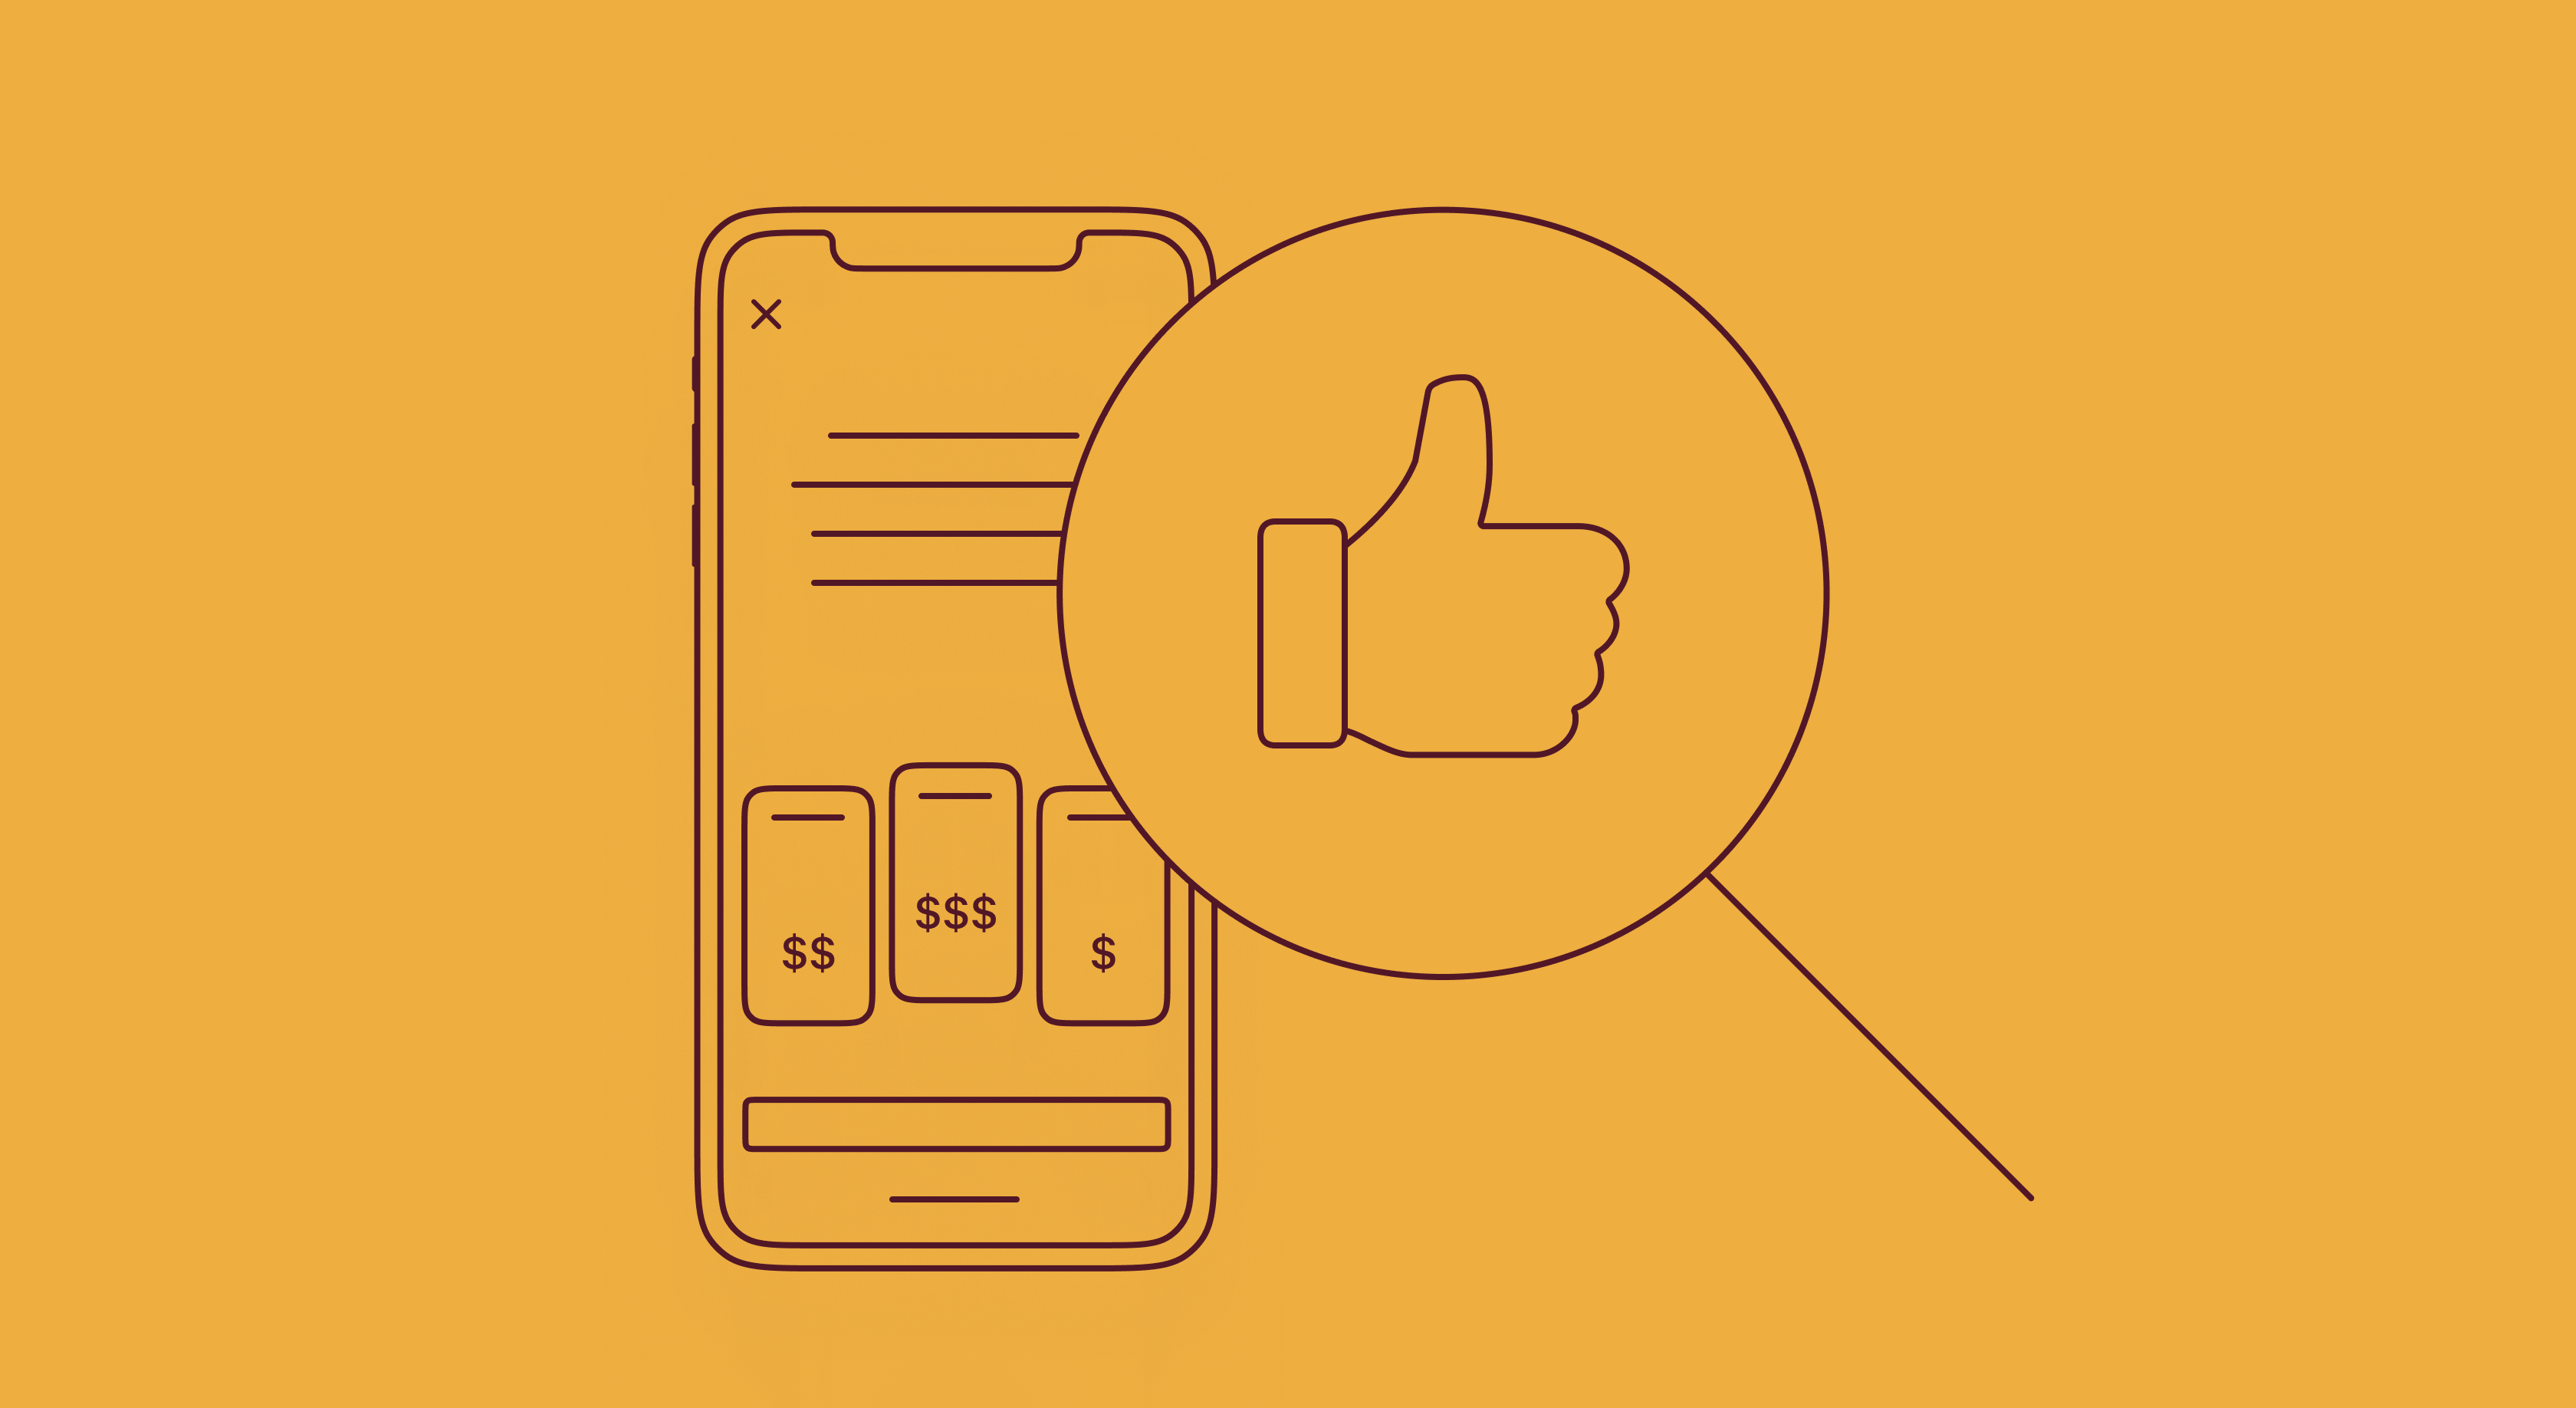 How to design paywall to pass review for the App Store